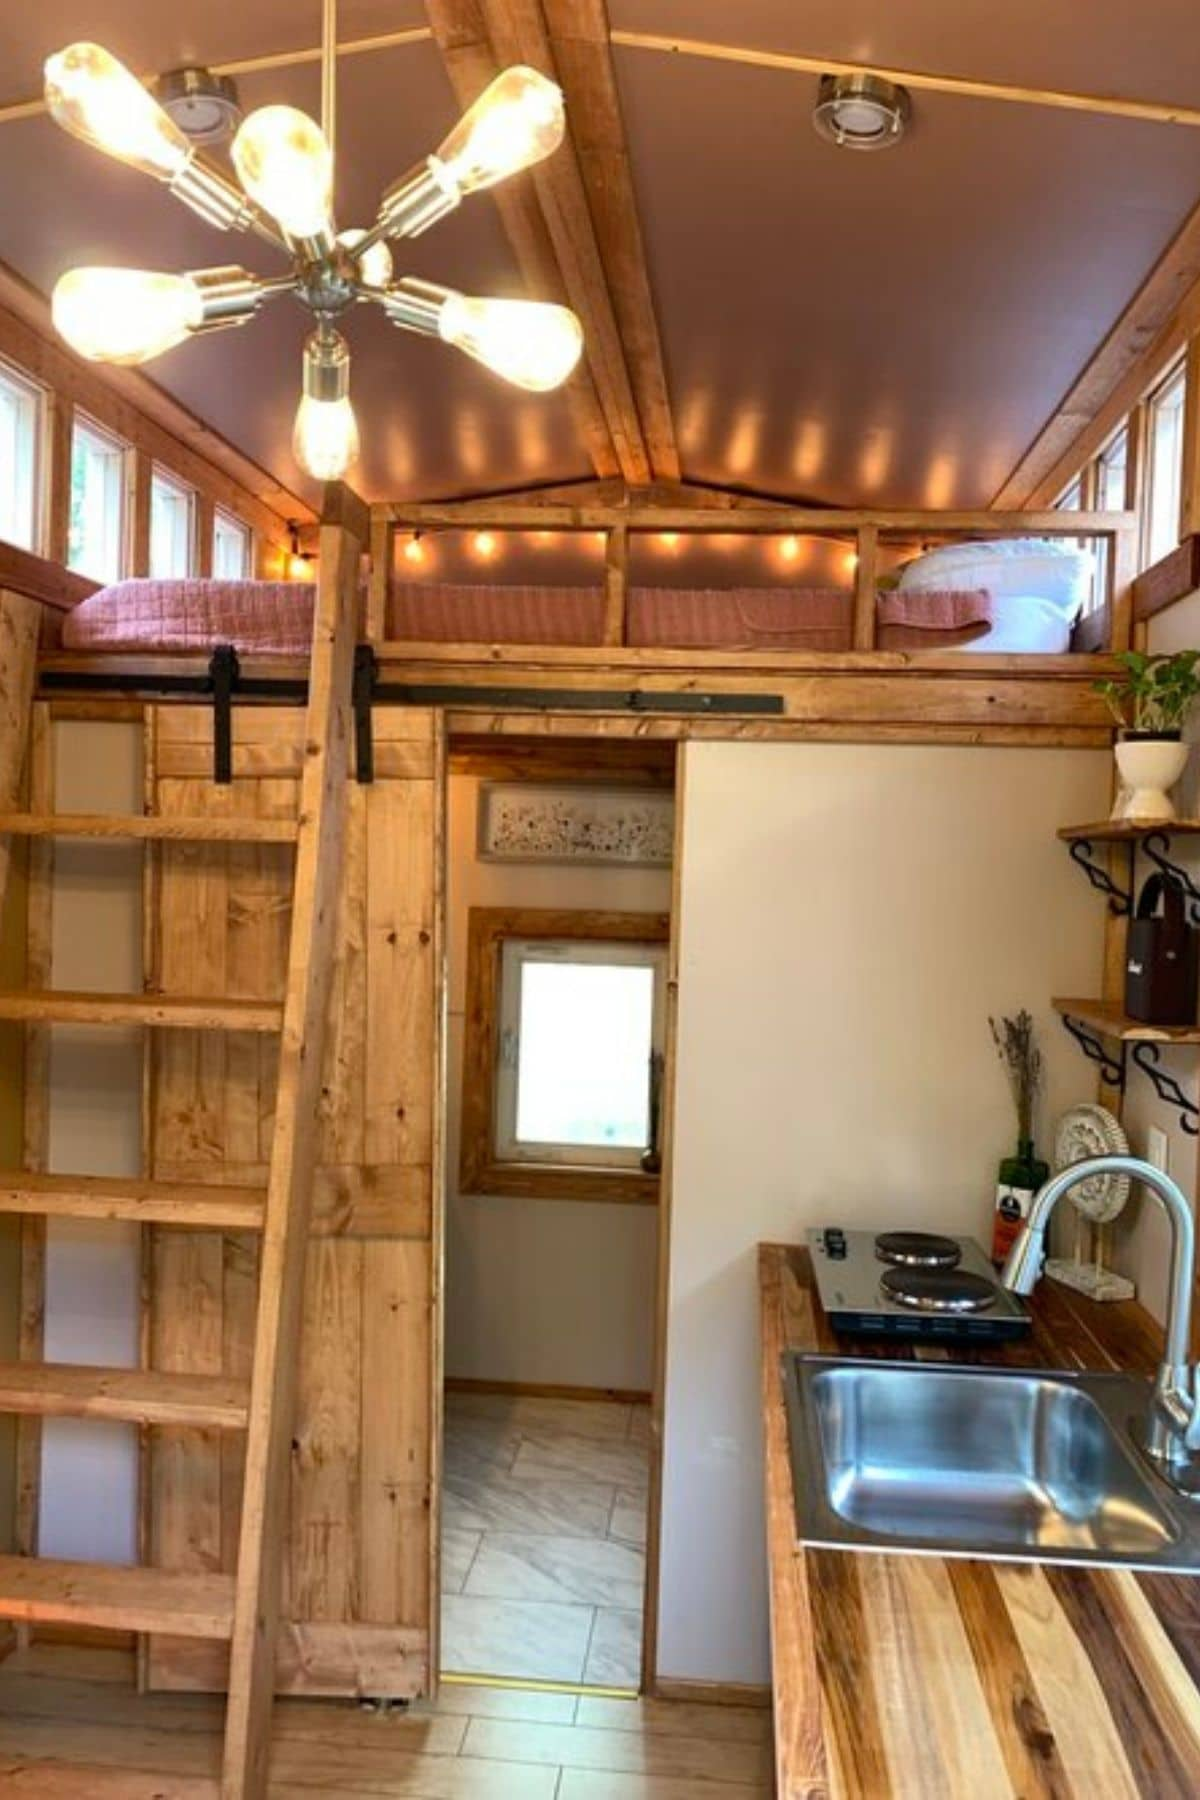 view from door into tiny home with loft behind butcher block kitchen counter